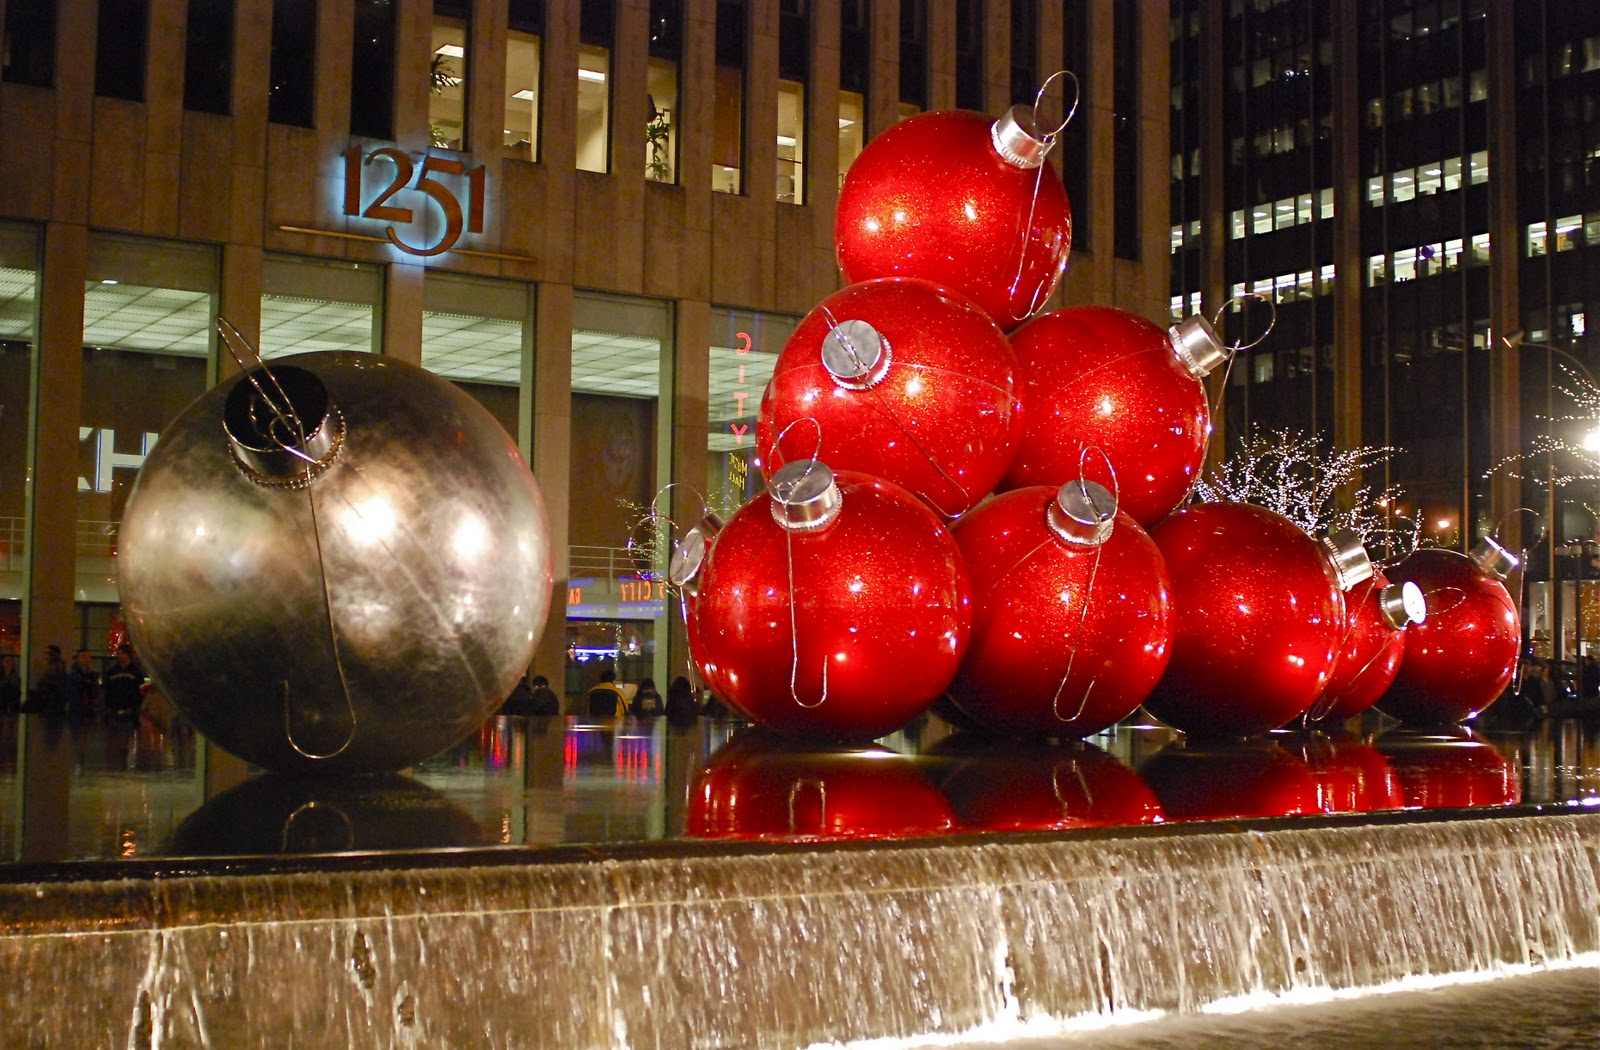 NYC ♥ NYC: Giant Christmas Ornaments at 1251 Sixth Avenue